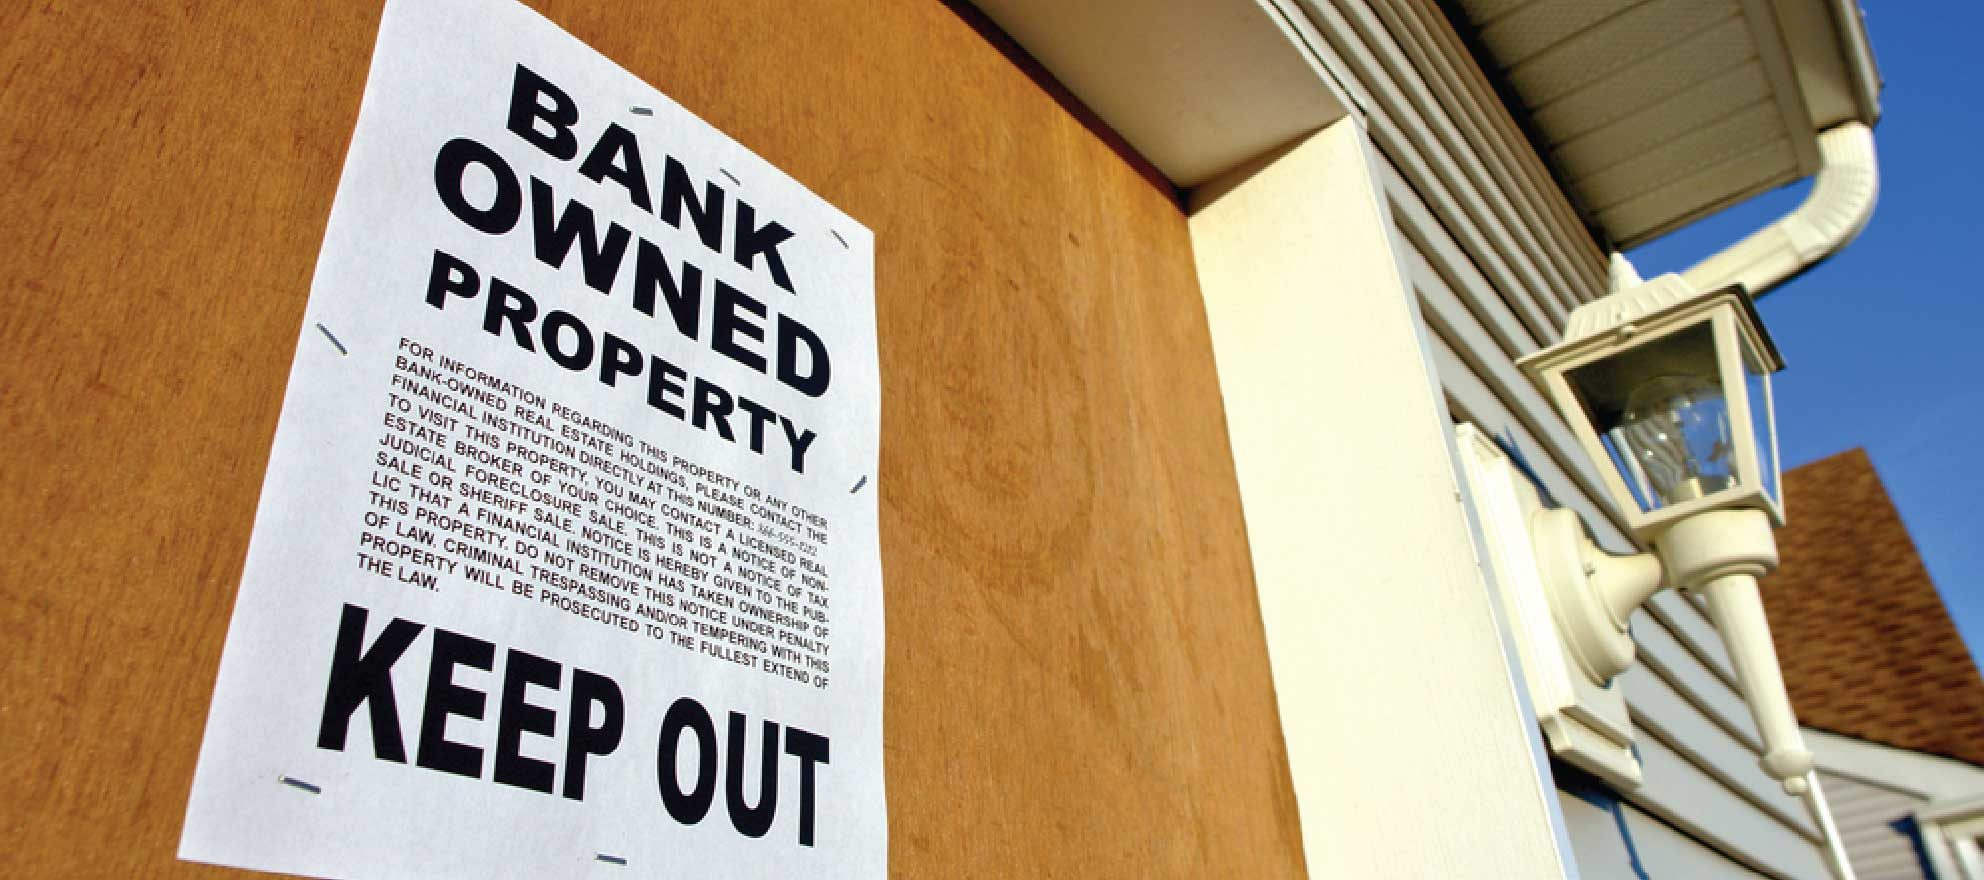 squatter bank owned property